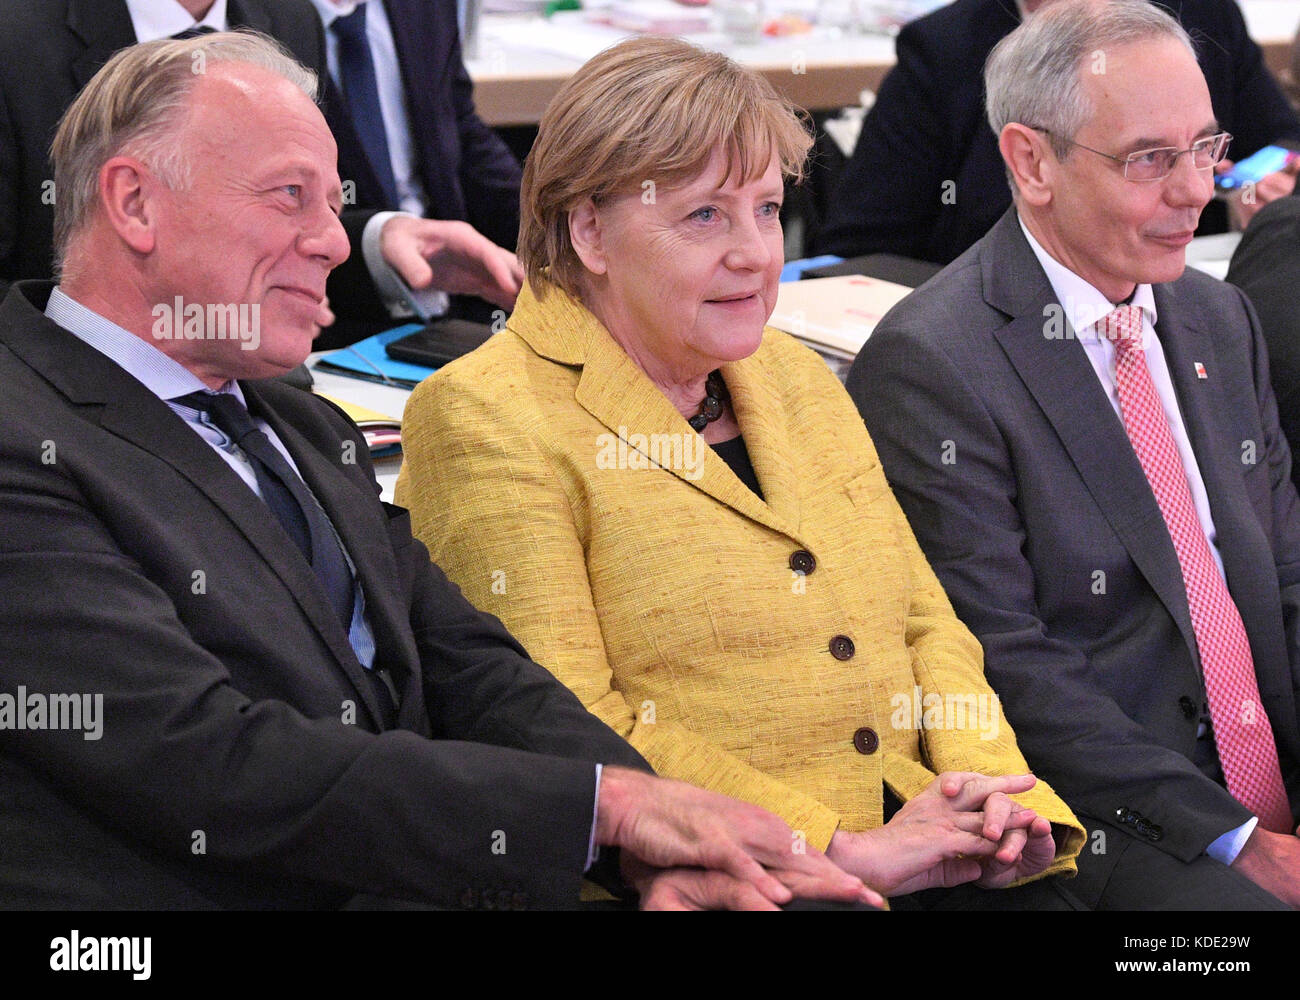 Hanover, Germany. 12th Oct, 2017. German Chancellor Angela Merkel (CDU) sits next to the chairman of the IG BCE, Stock Photo